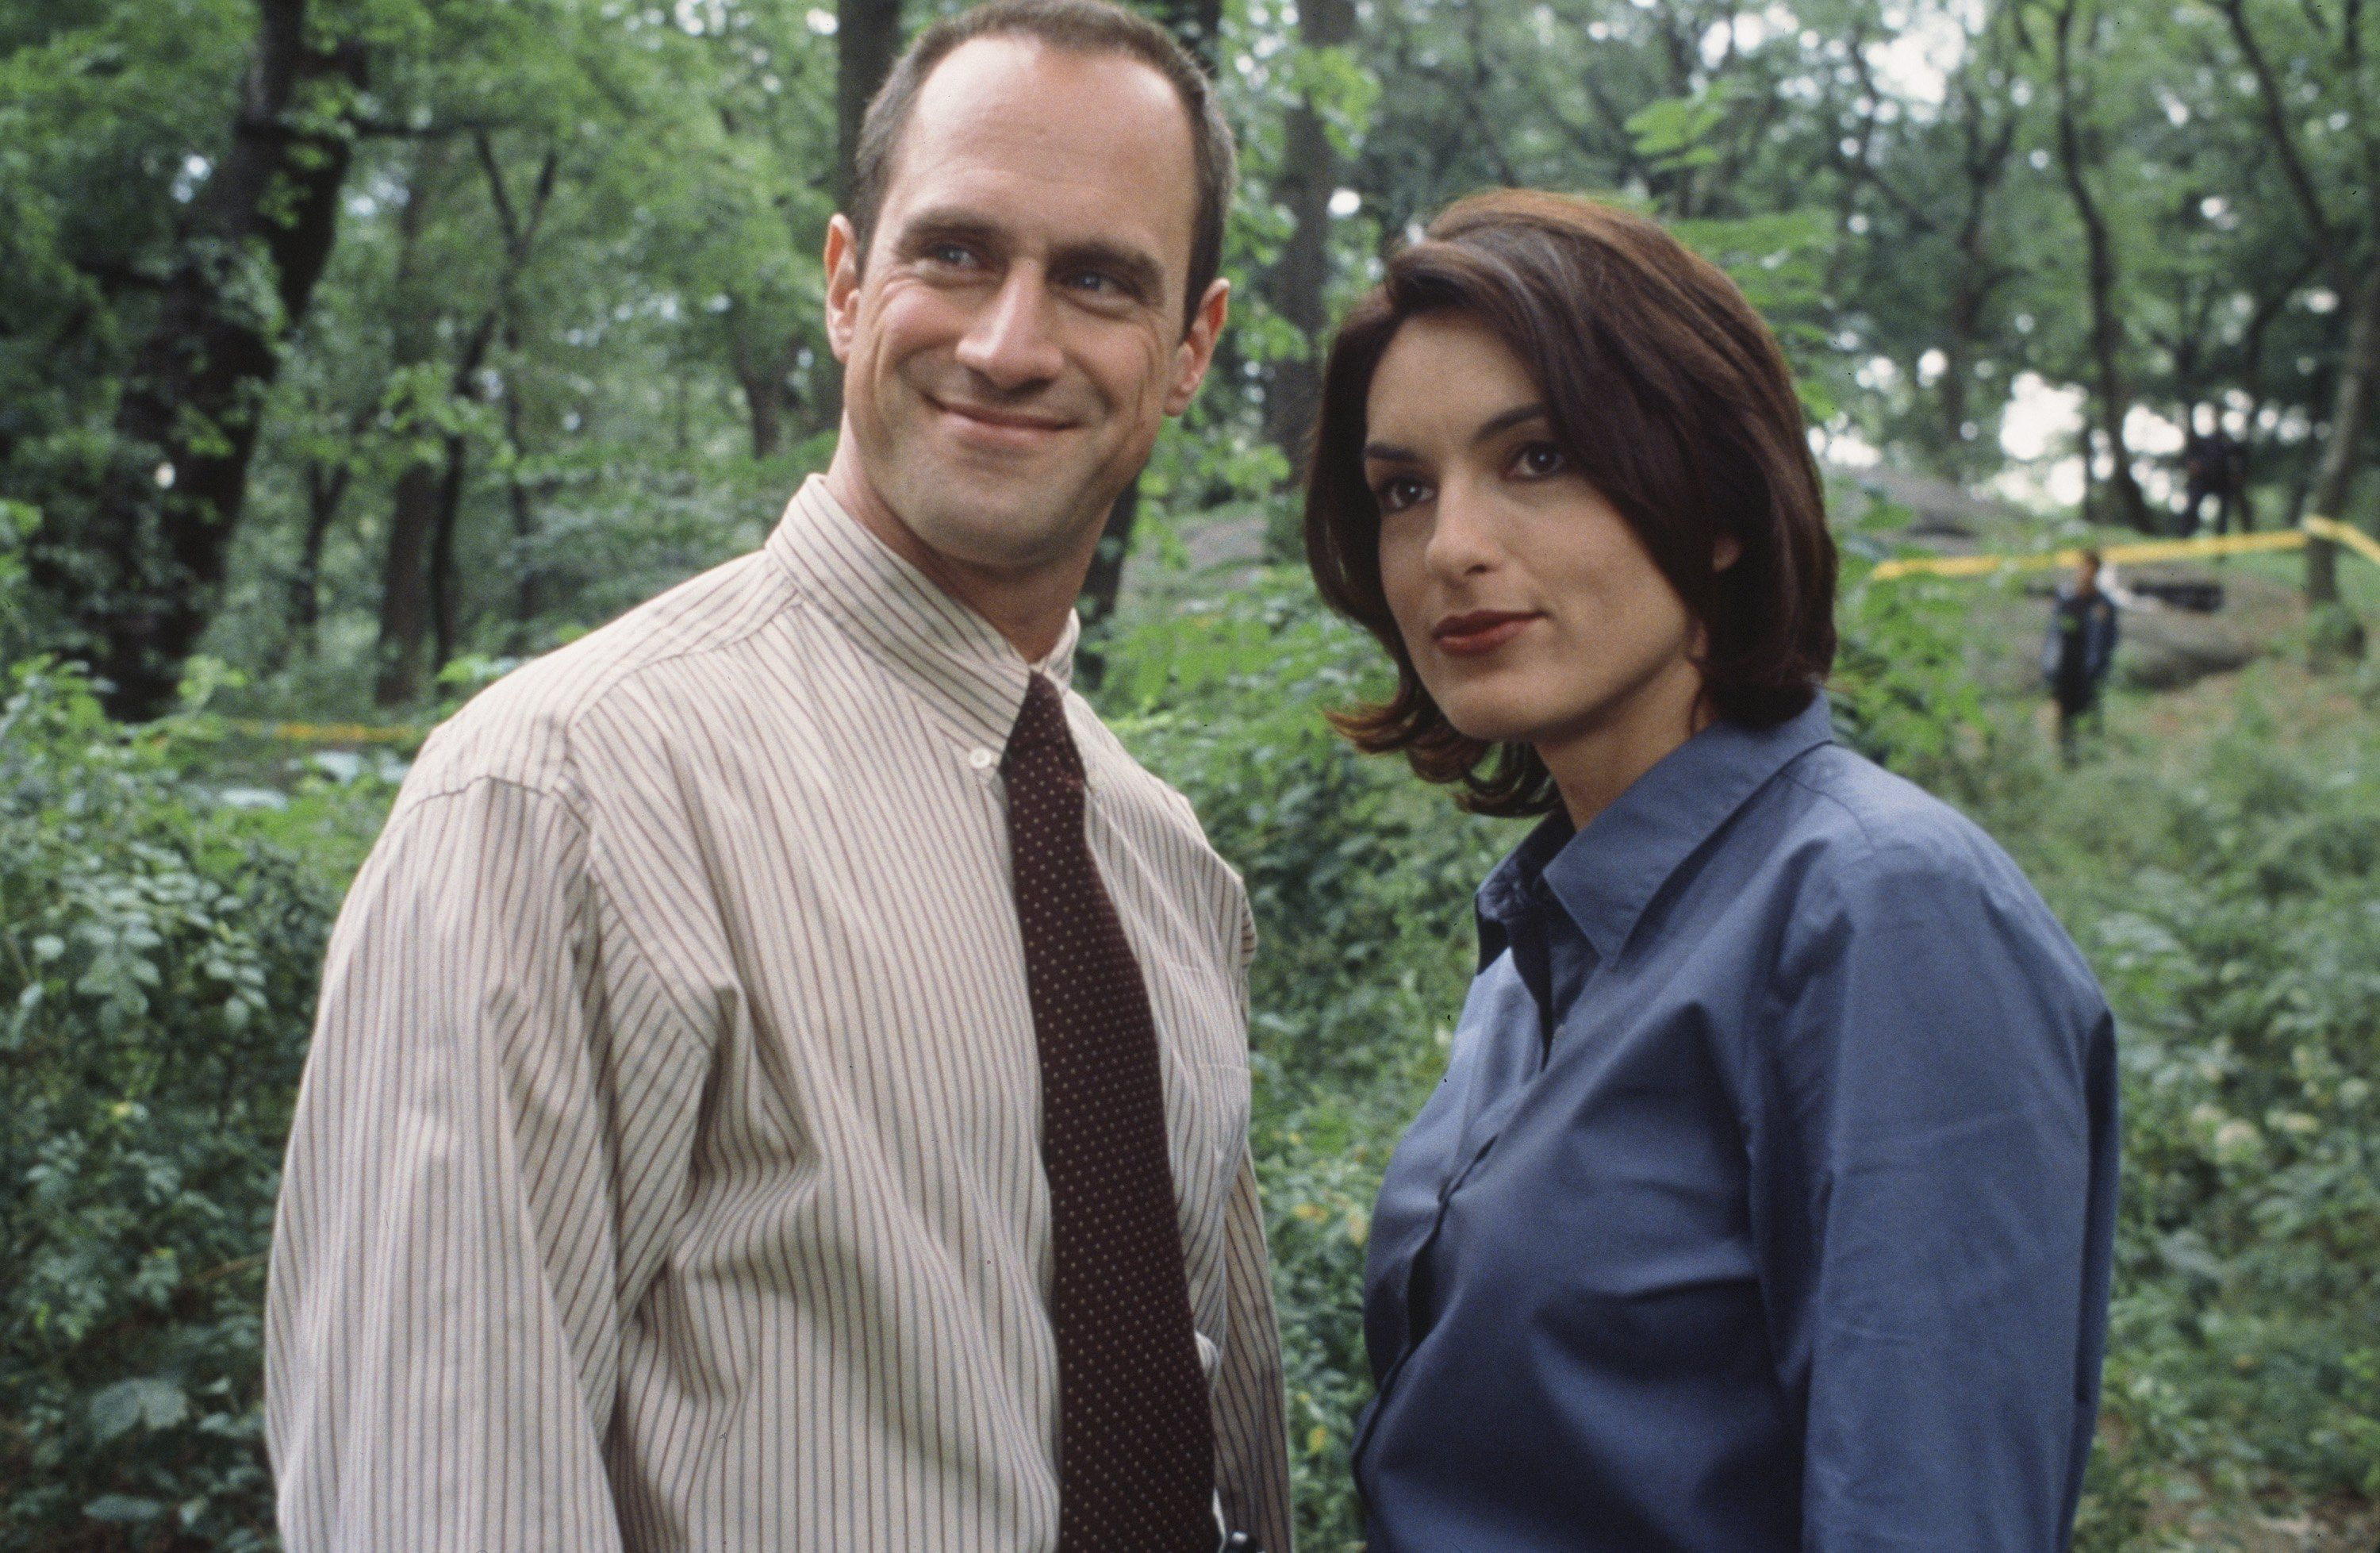 Law And Order Svu Fans React After Christopher Meloni Comments